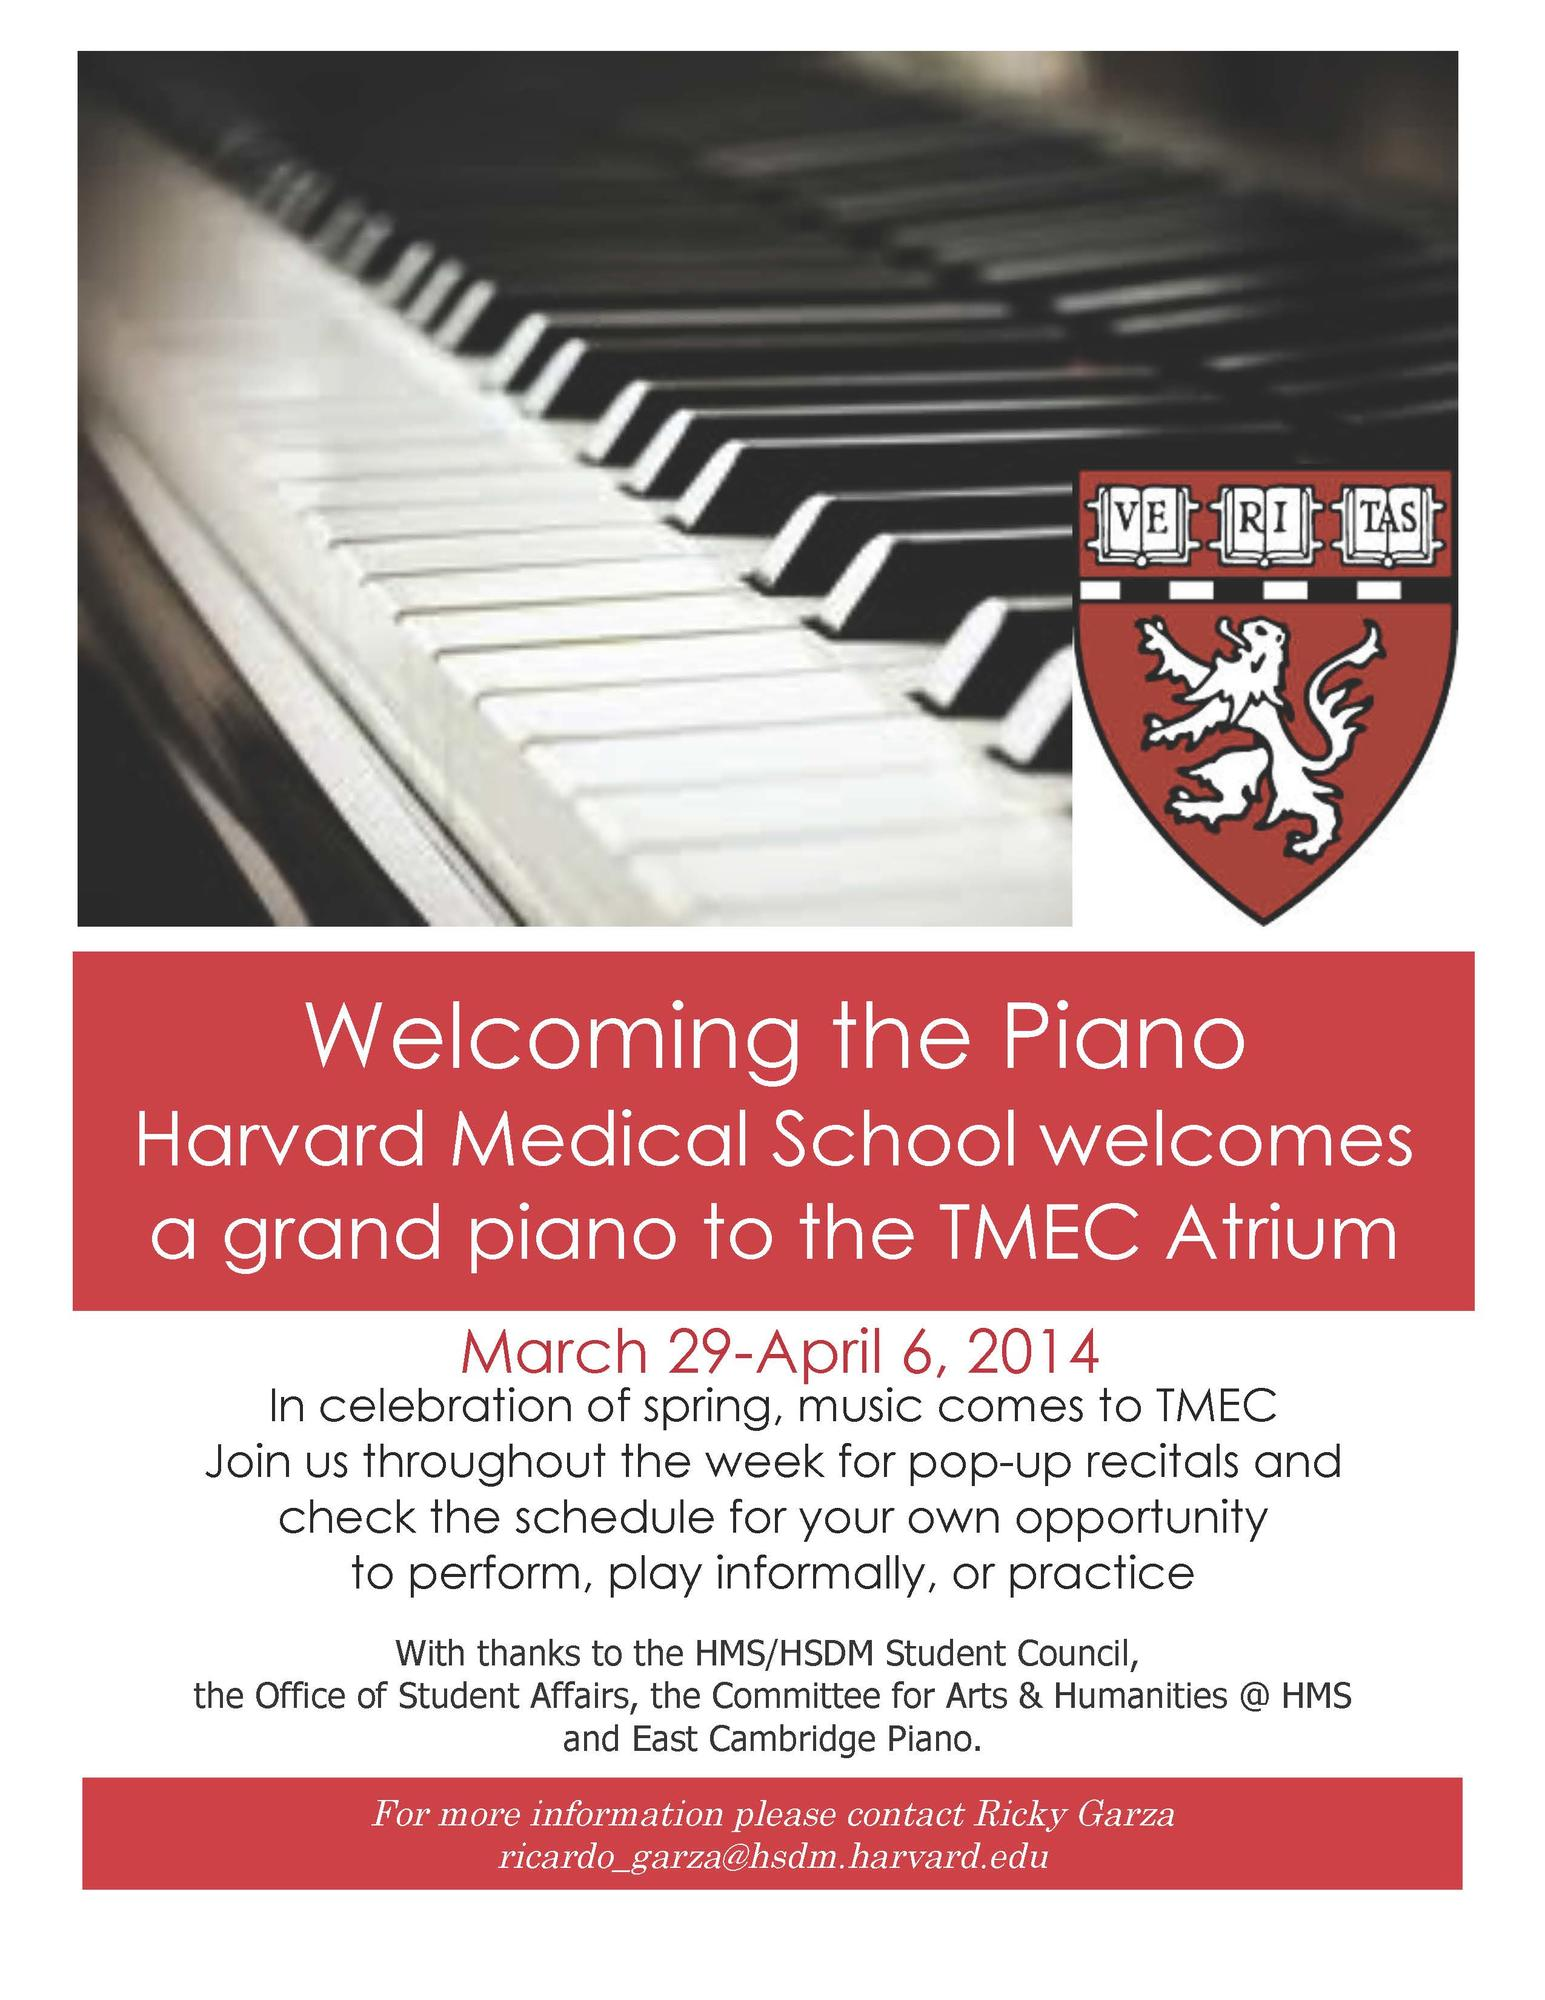 HMS Piano Welcome Poster